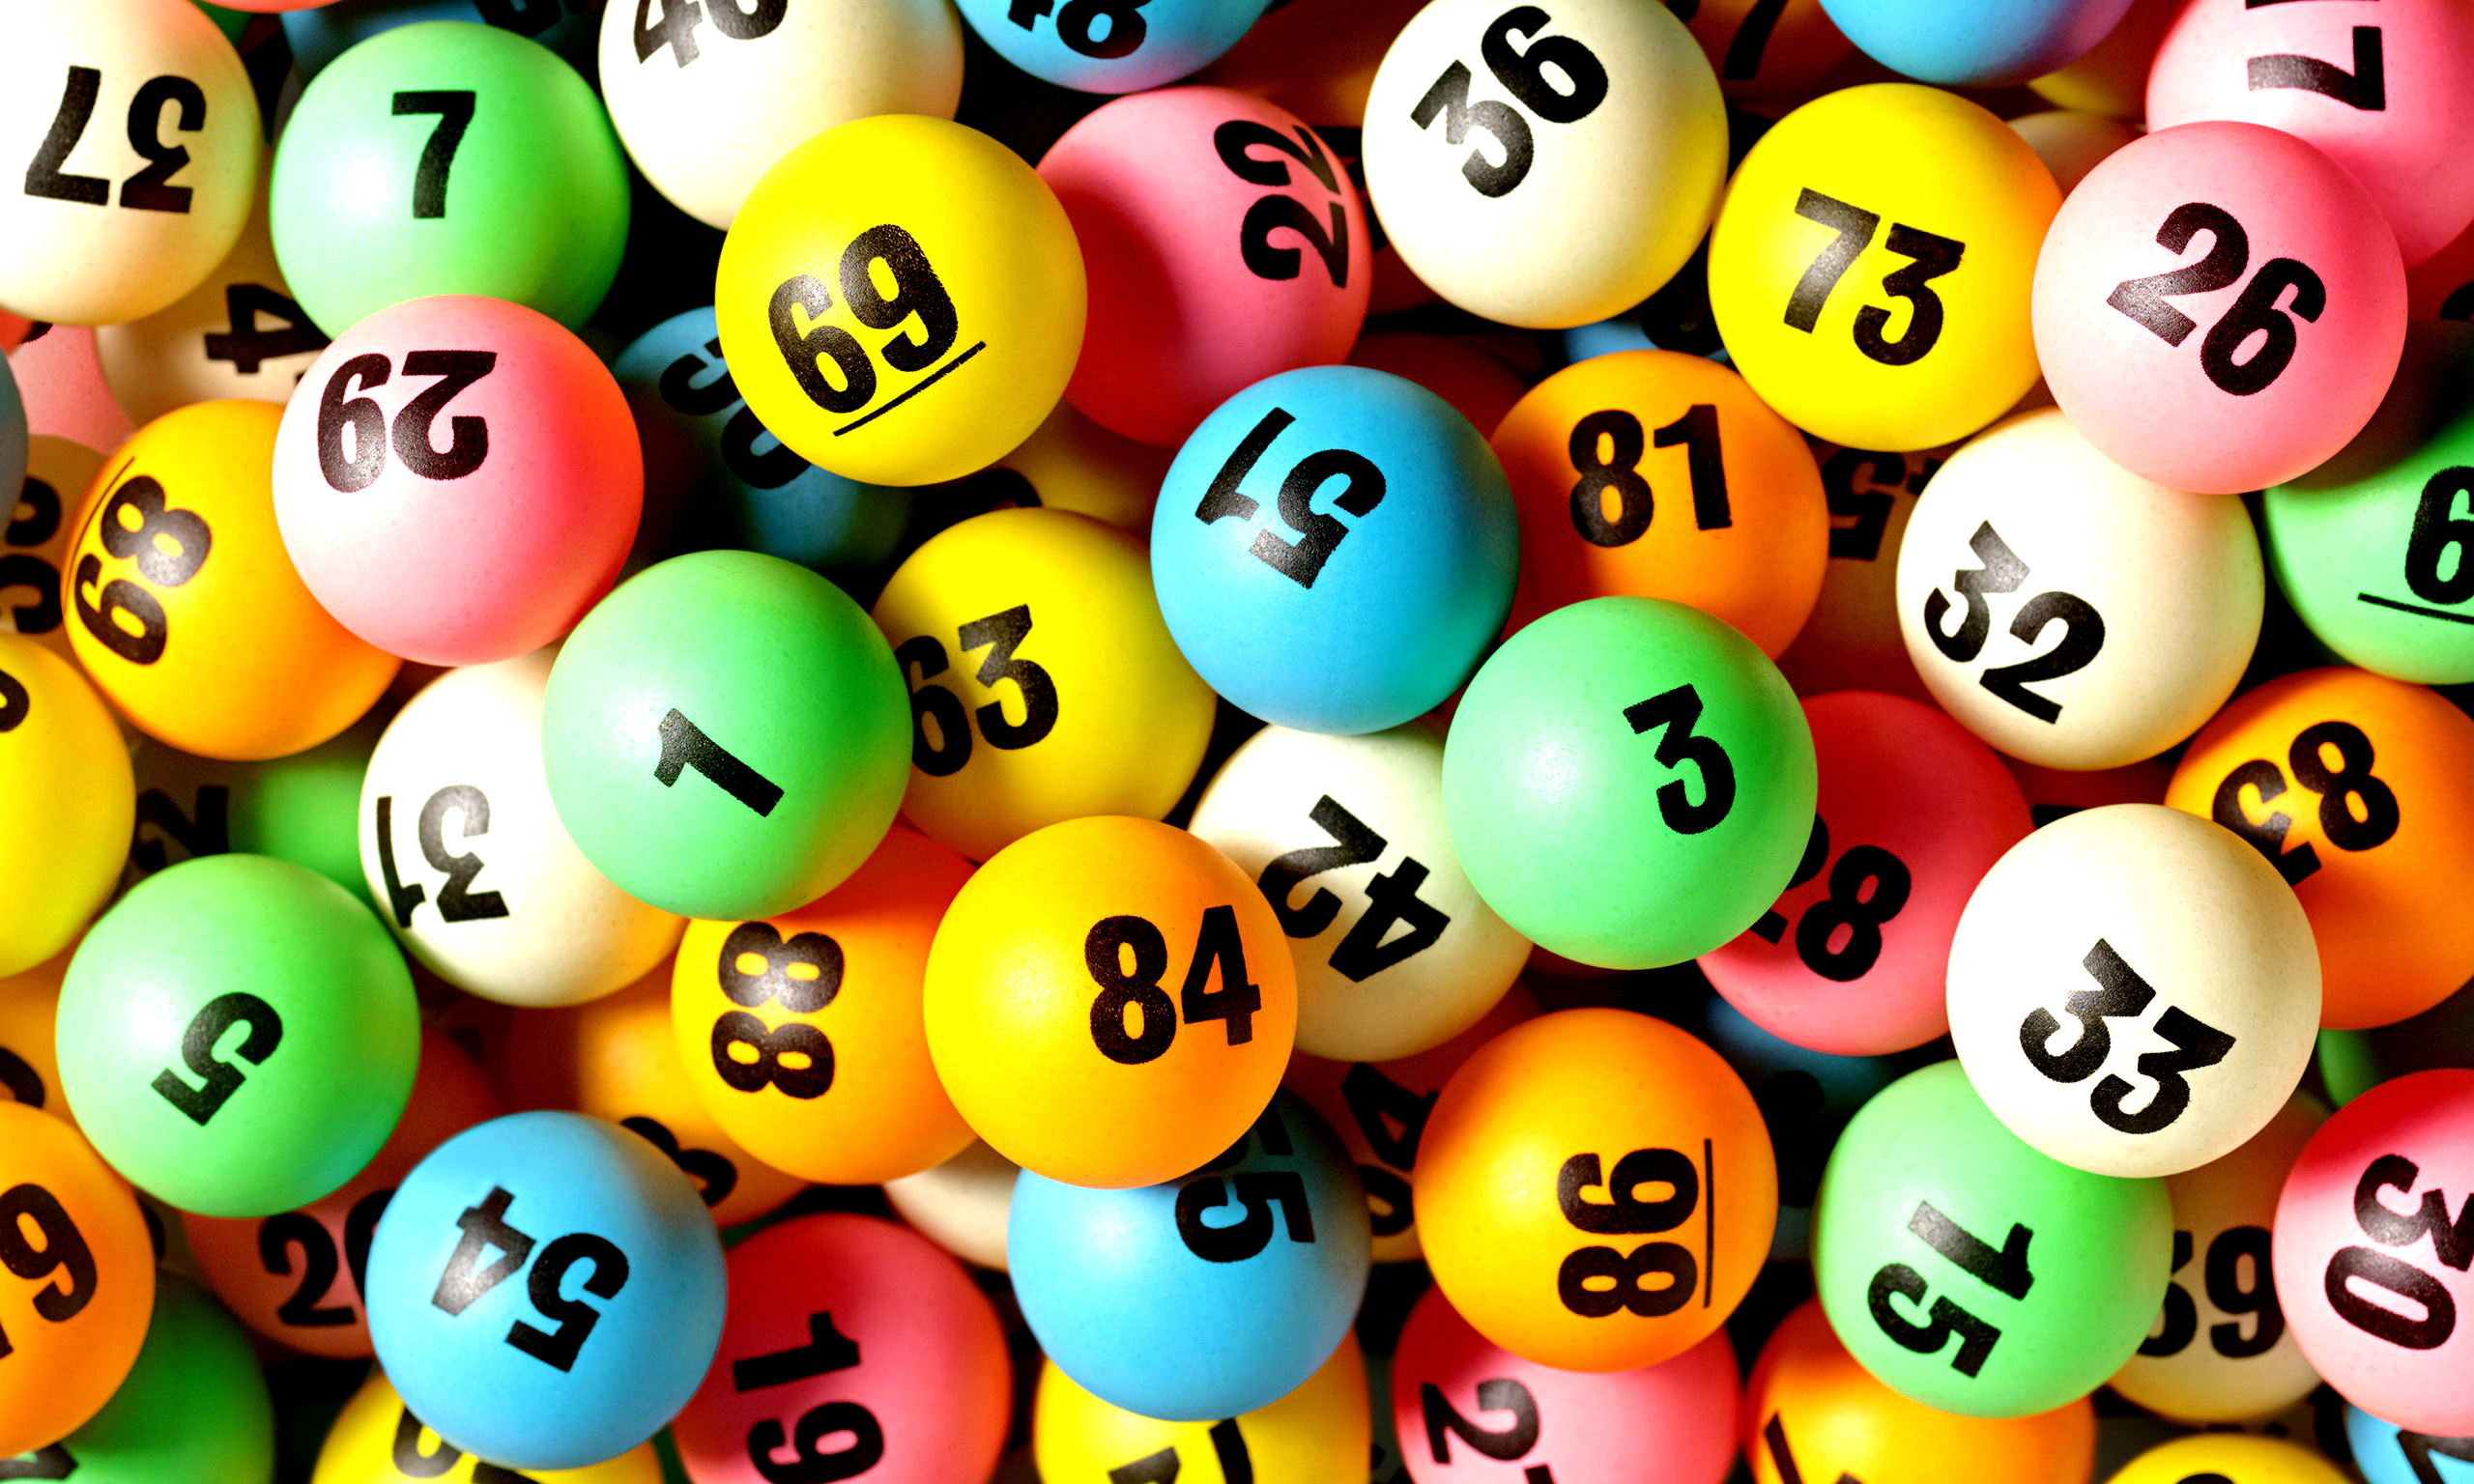 6/55 Lotto Result Feb 24 2021: Check Lotto Result Today 6/55 and 6/45 at official website